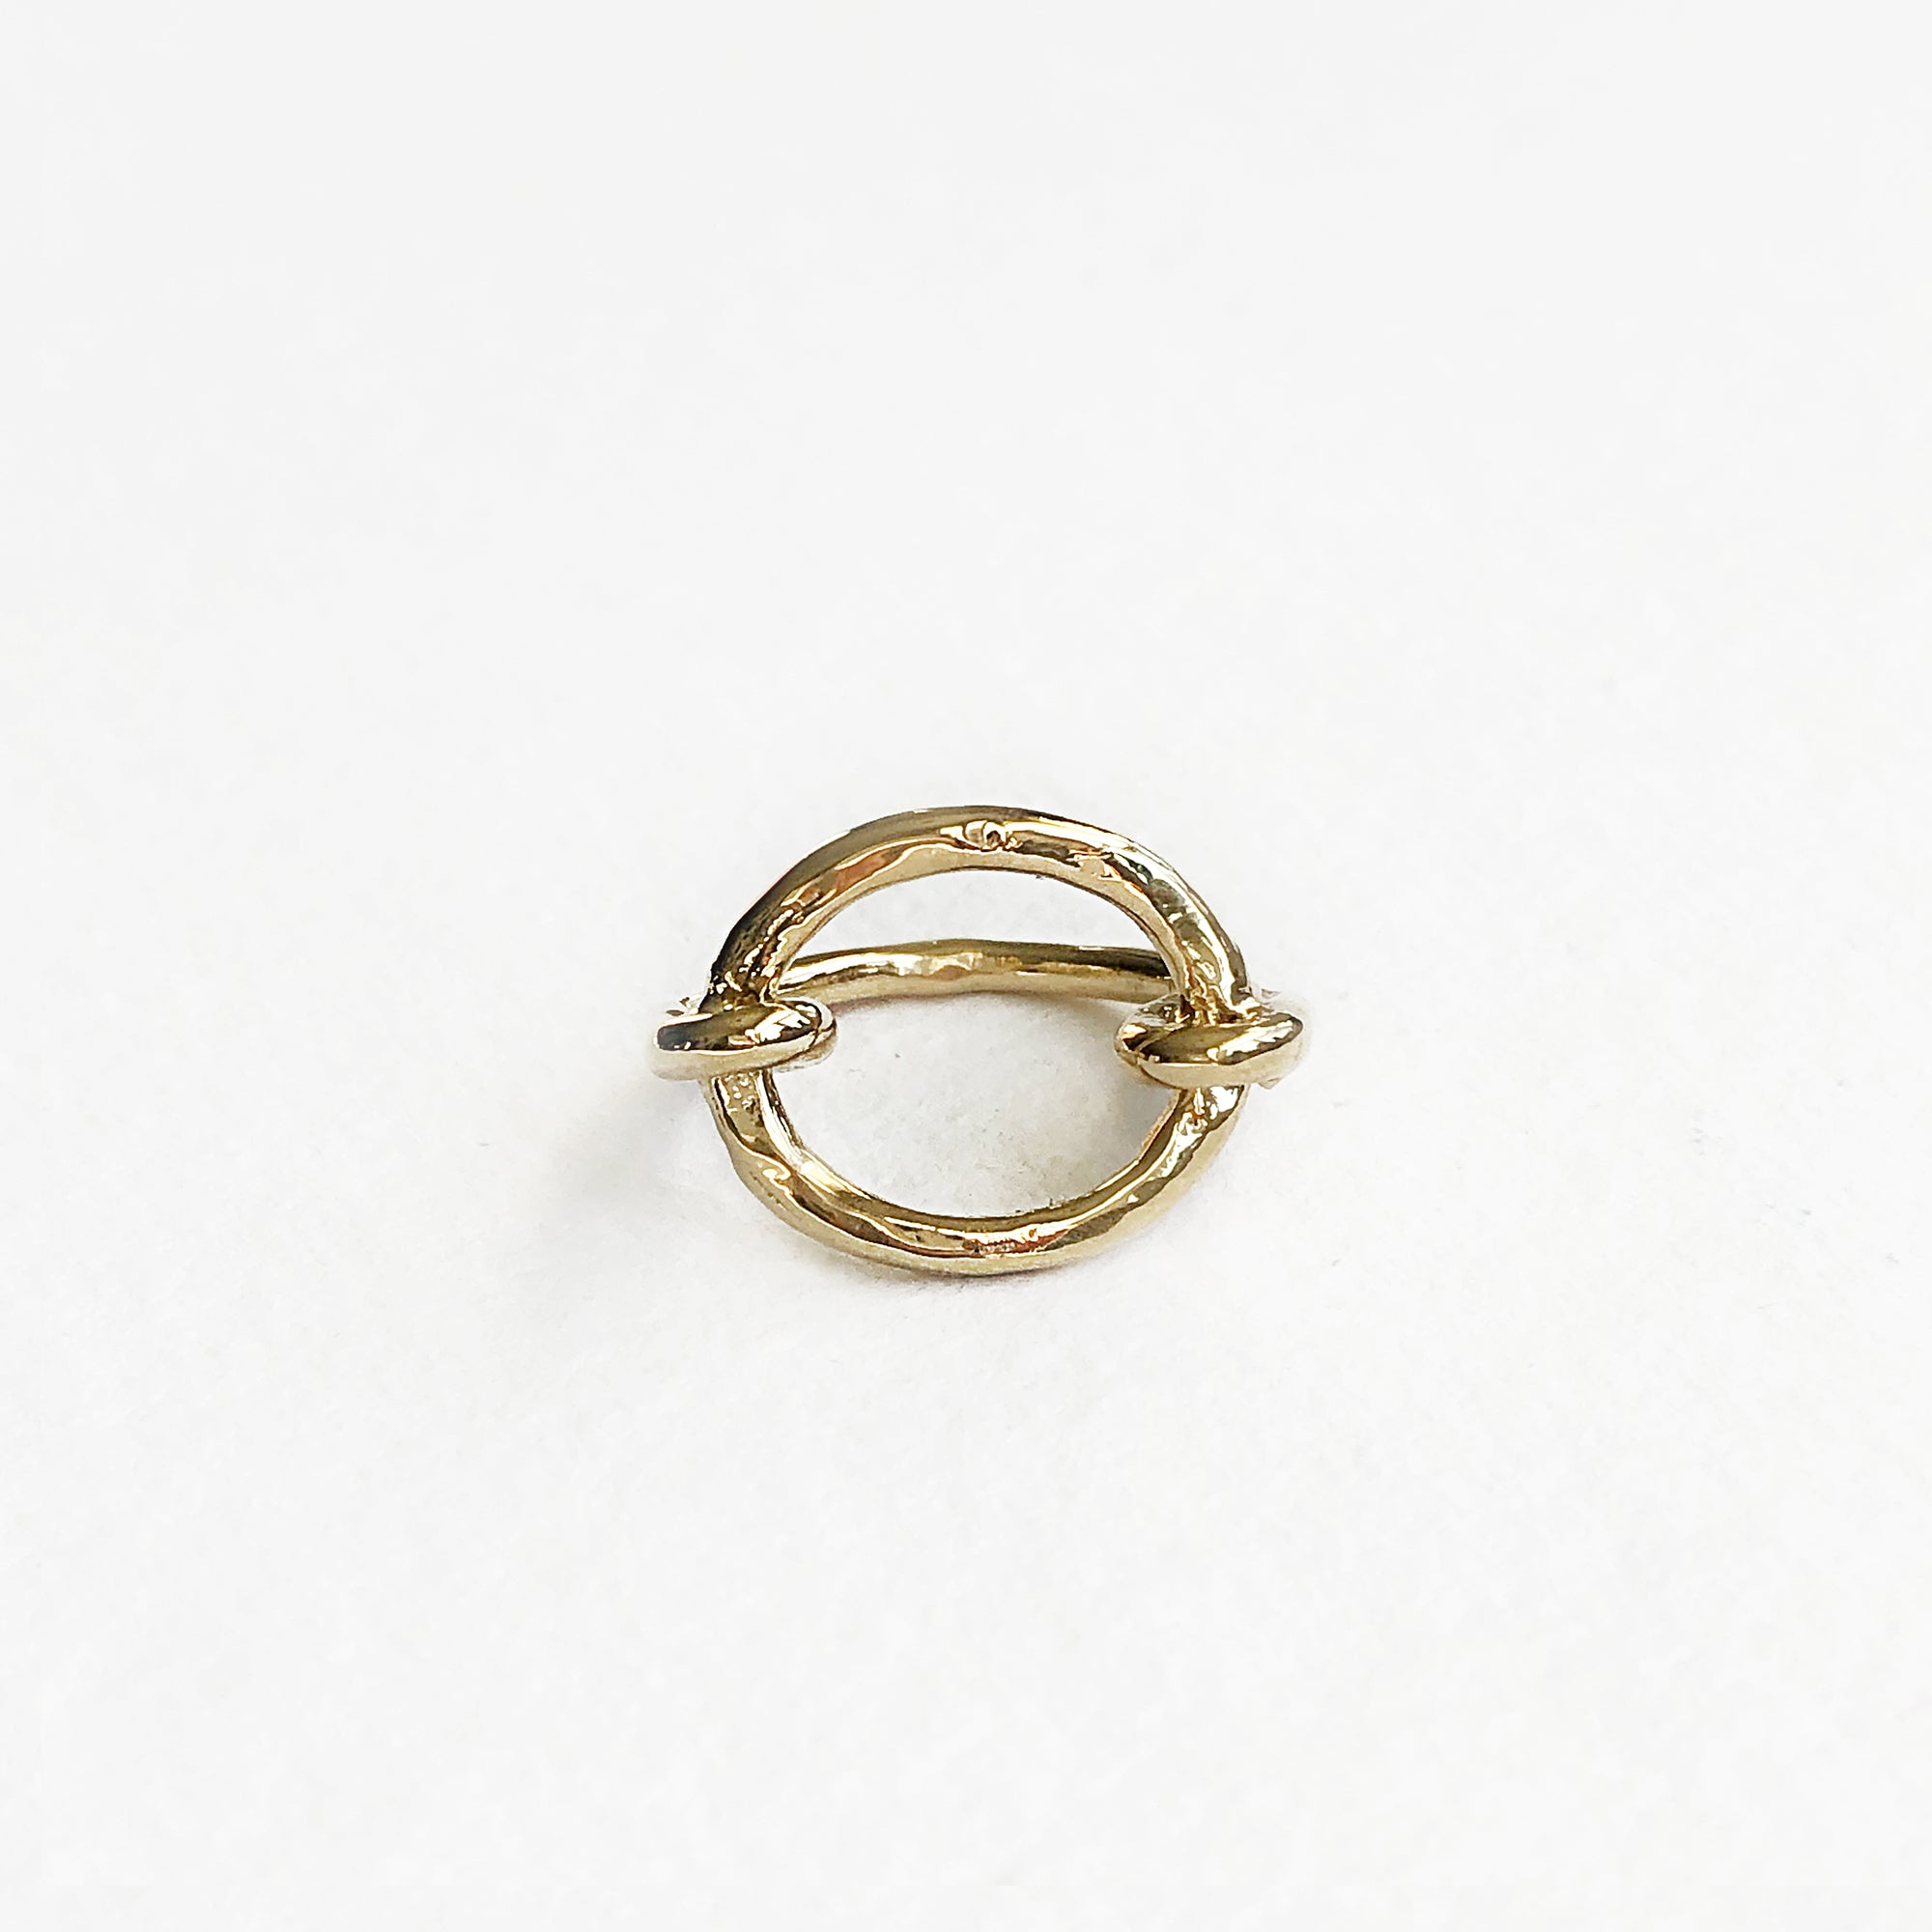 Melissa De La Fuente Friendship Ring